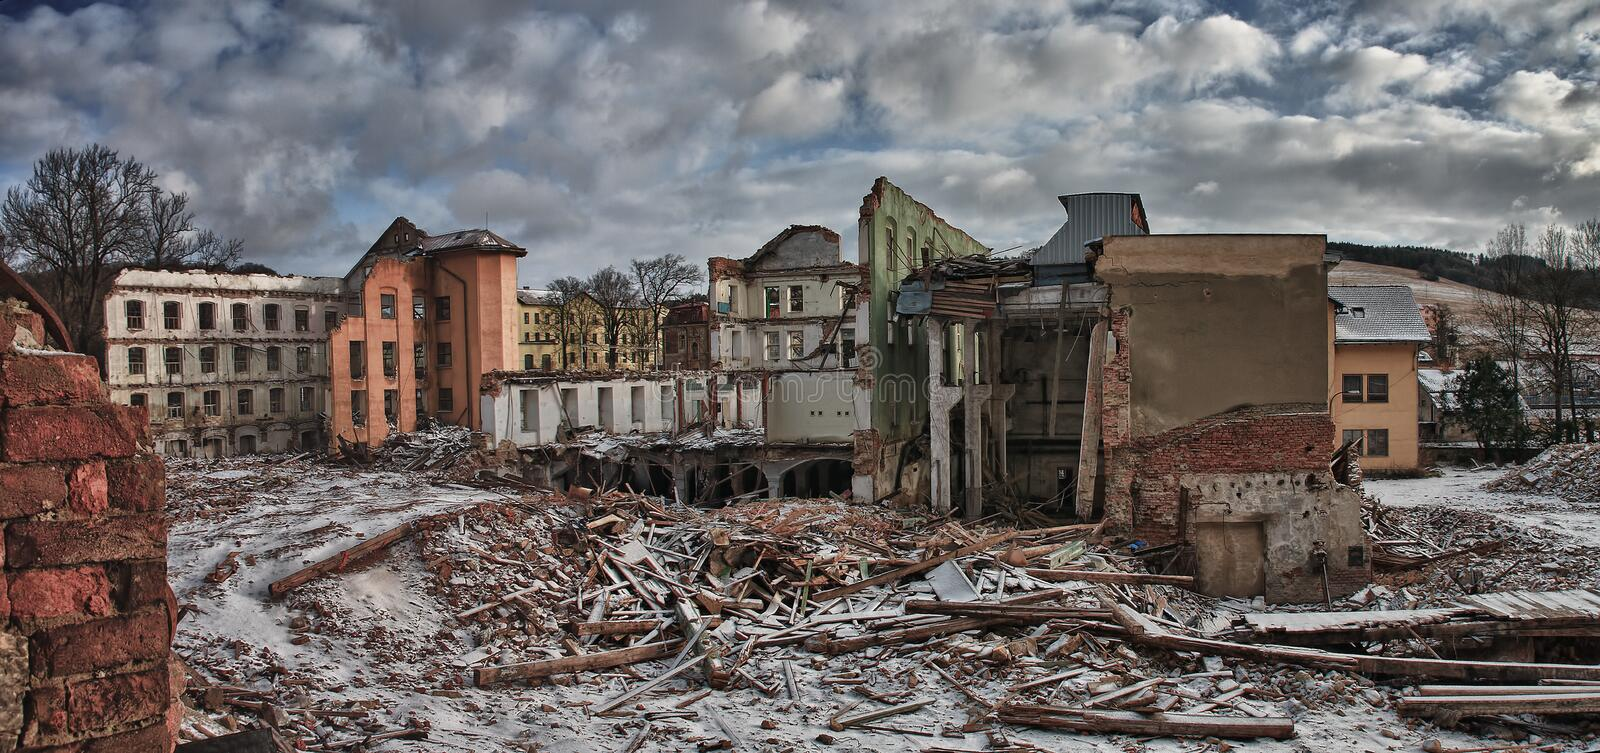 Download Demolition Of Factory Stock Image - Image: 23558981